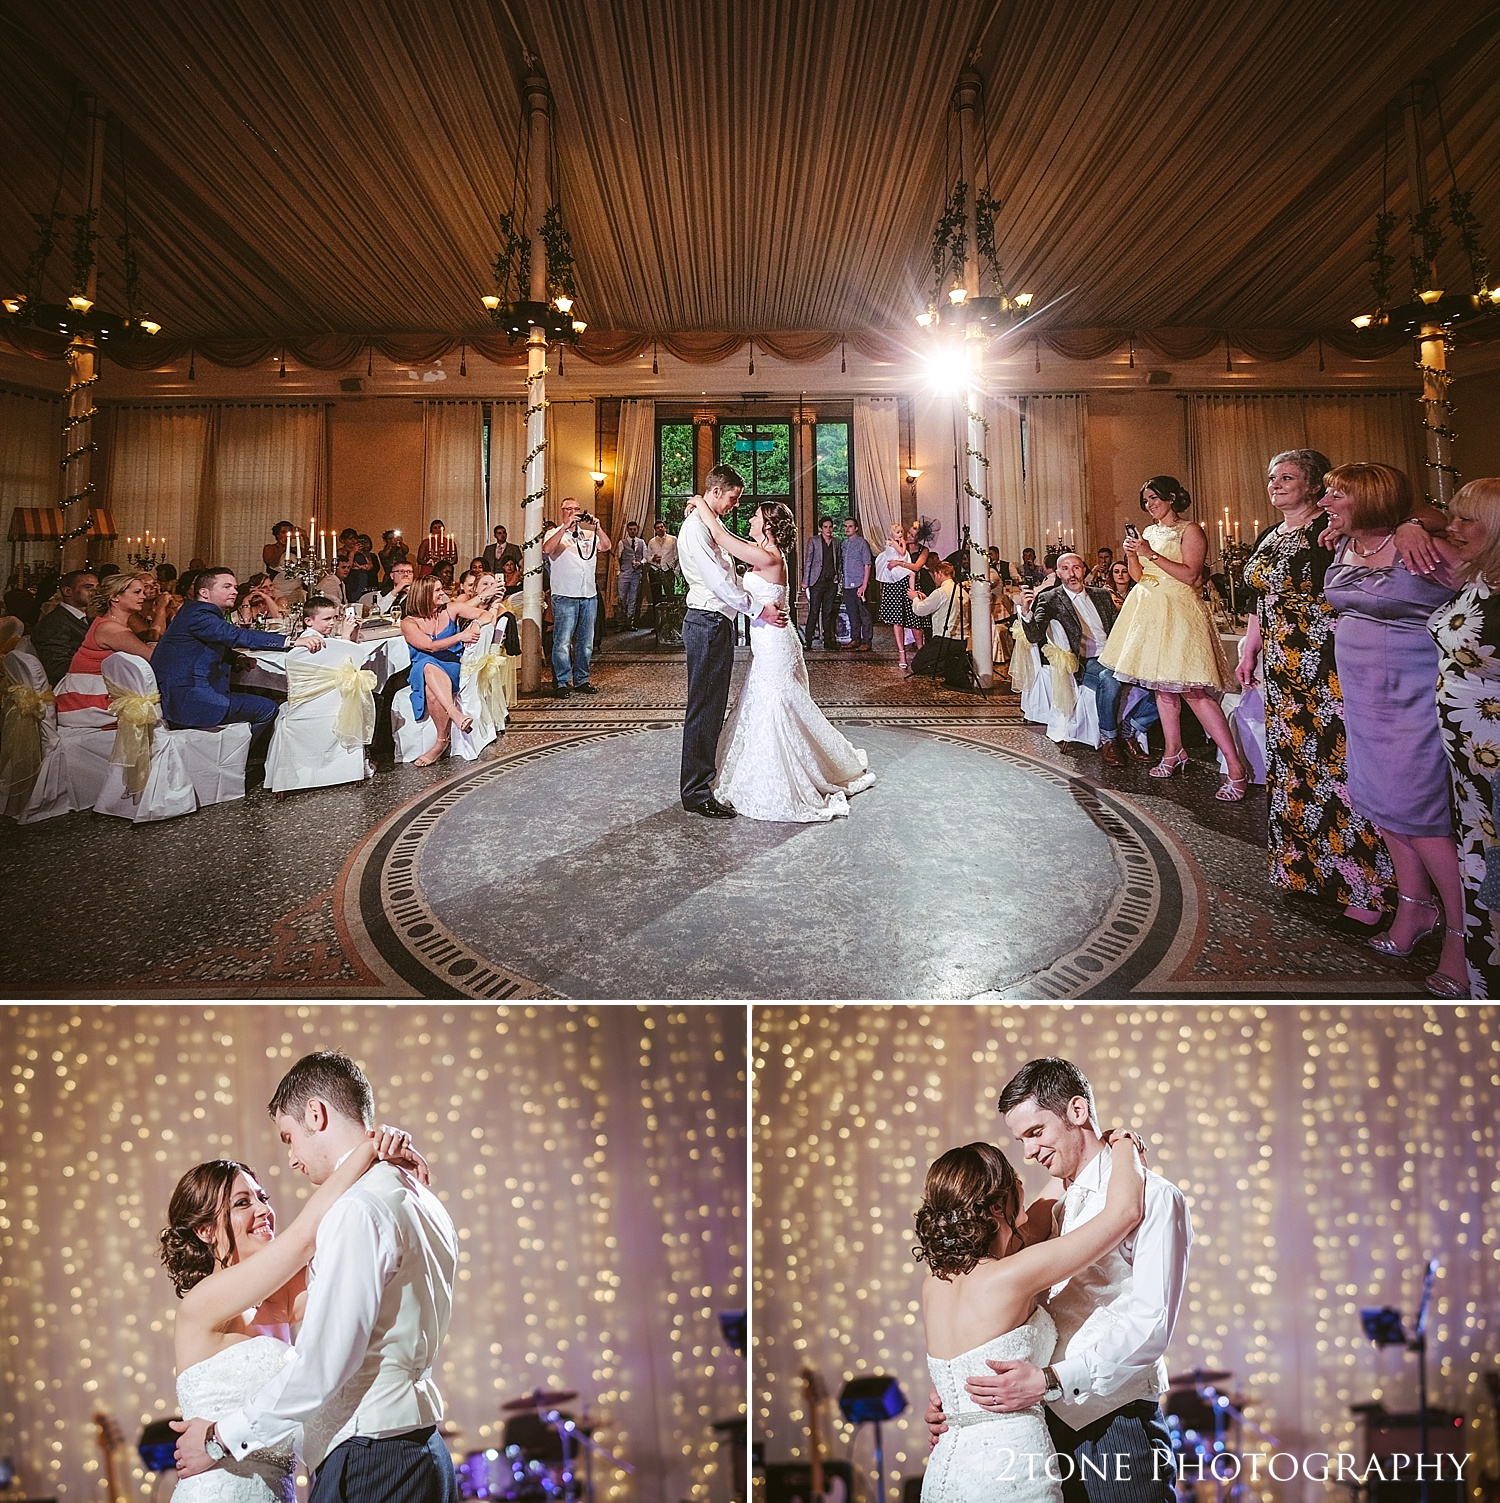 The first dance at Beamish Hall by Wedding Photographers based in Durham, www.2tonephotography.co.uk